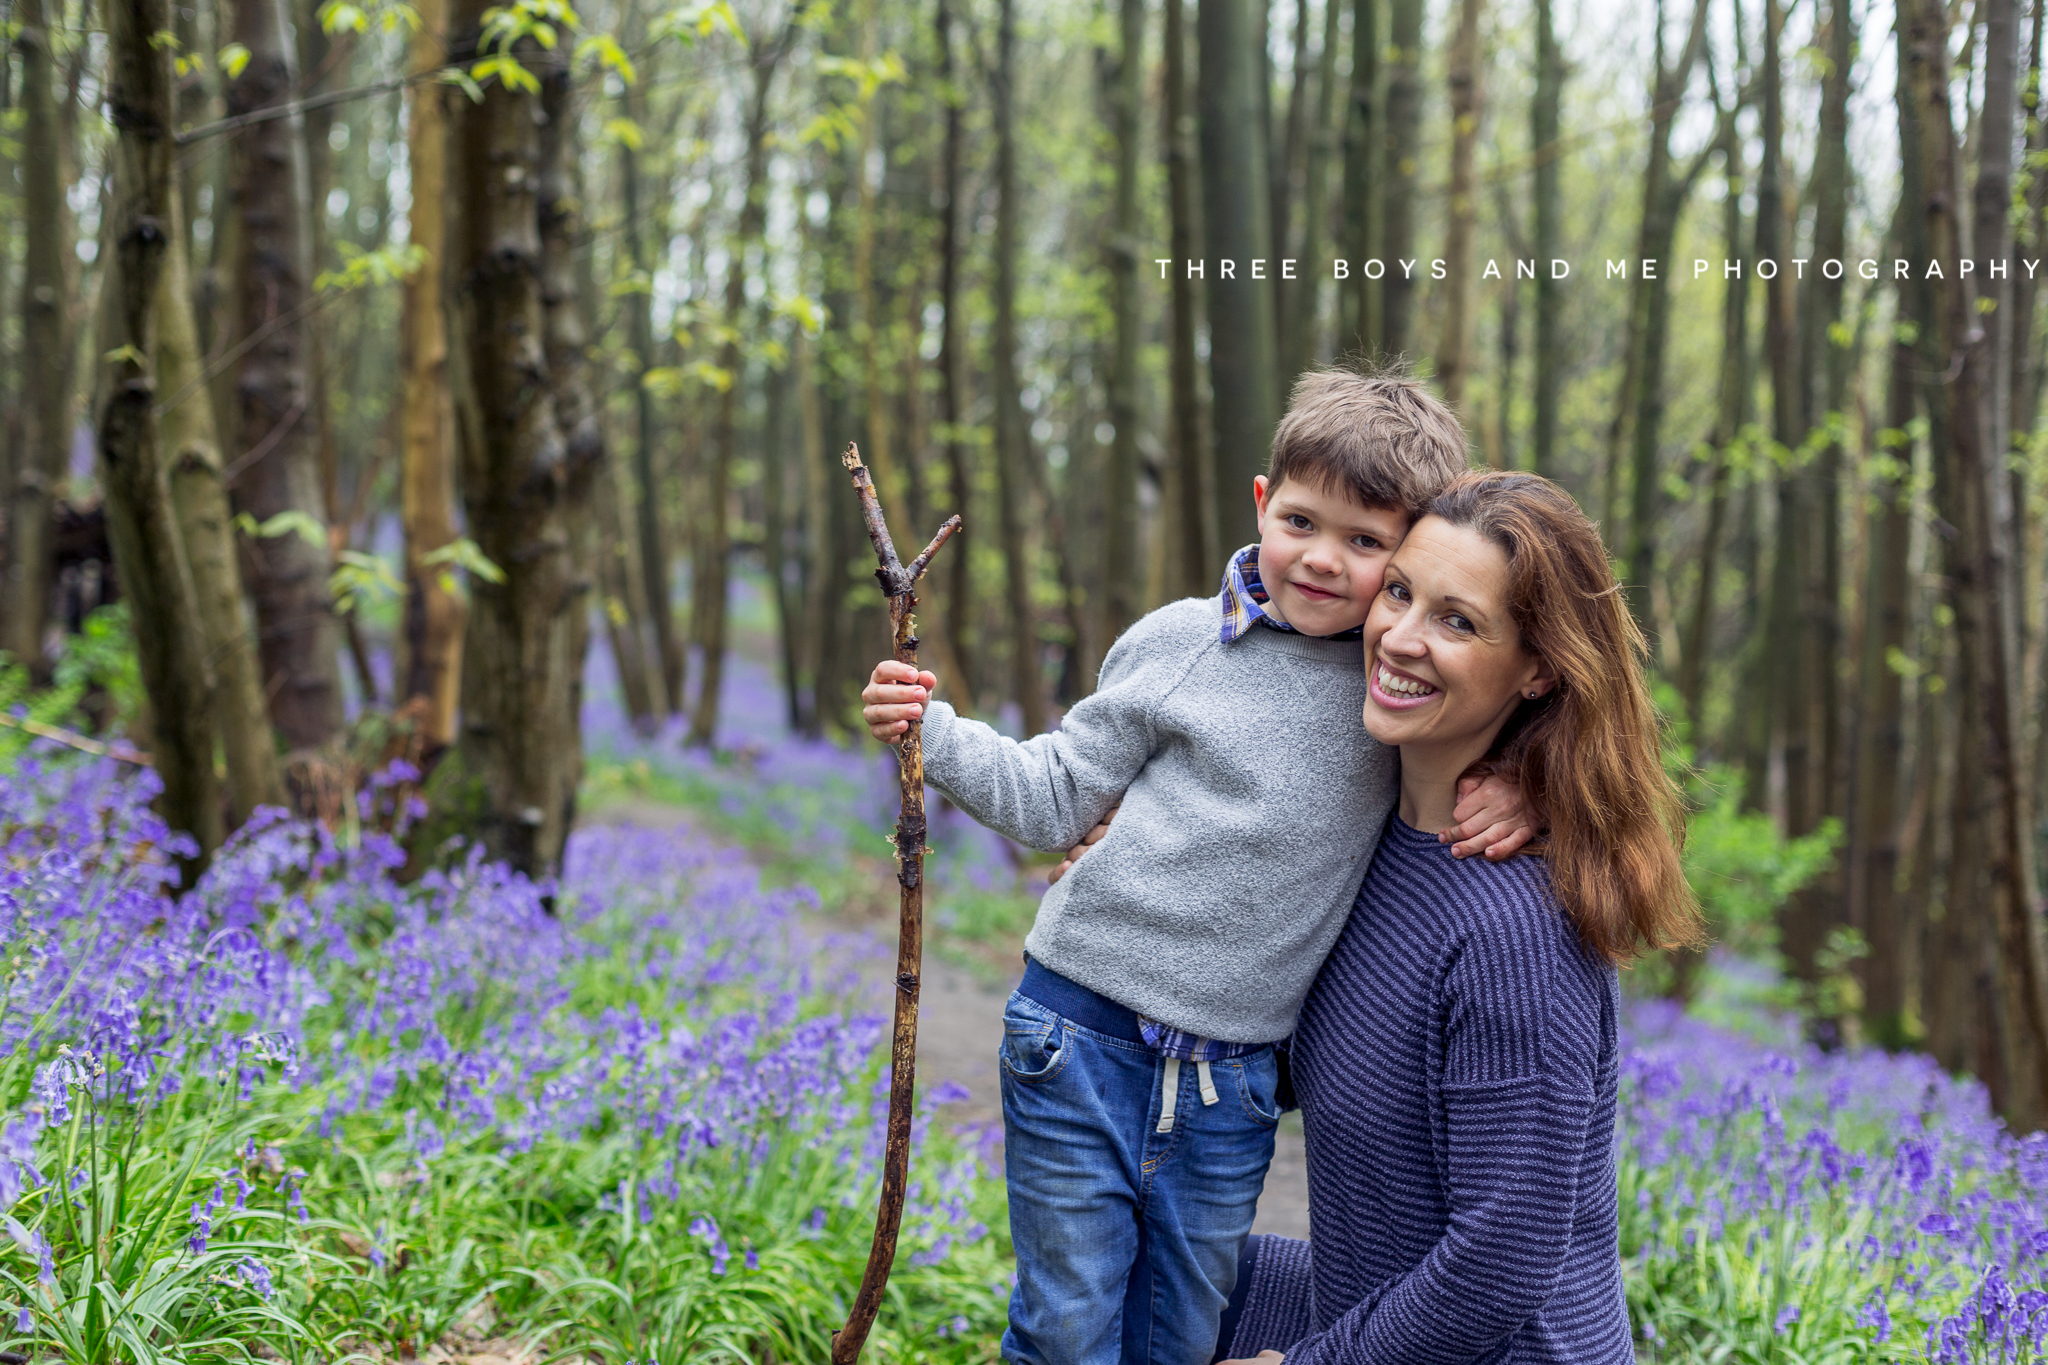 Bexley family photographer Nina Callow 3B&ME Photography